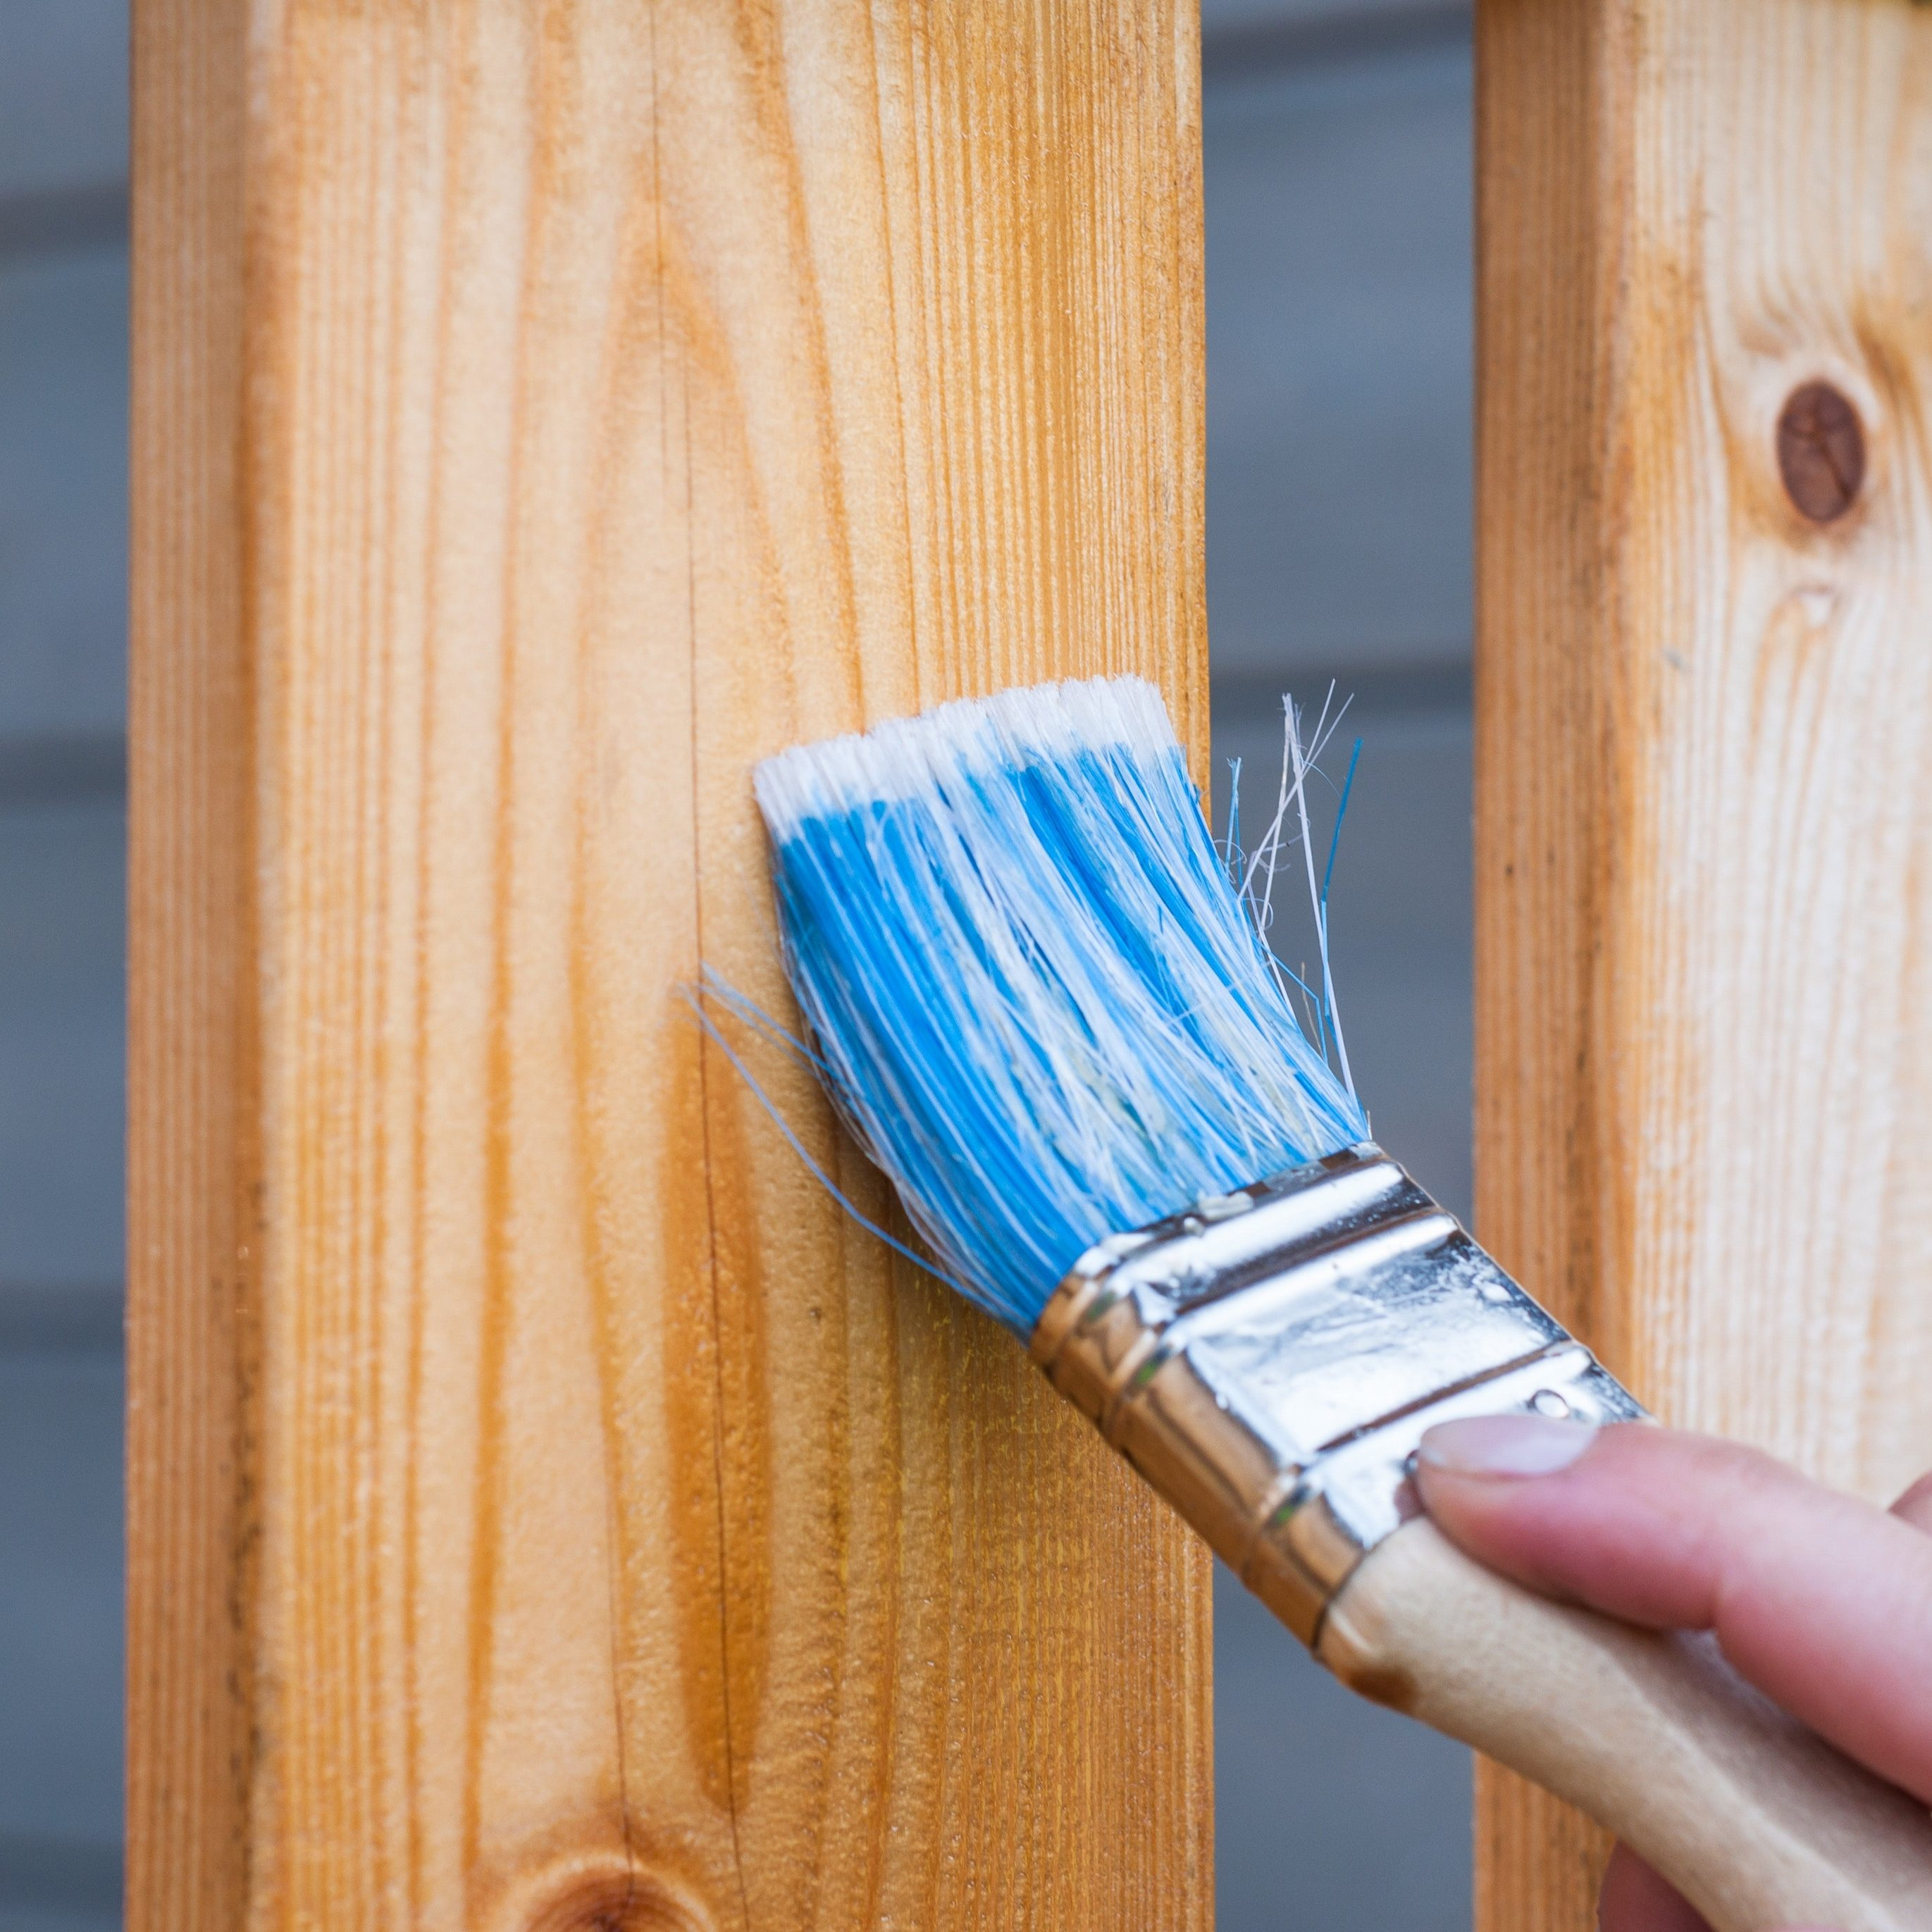 apply-blue-brush-carpentry-221027